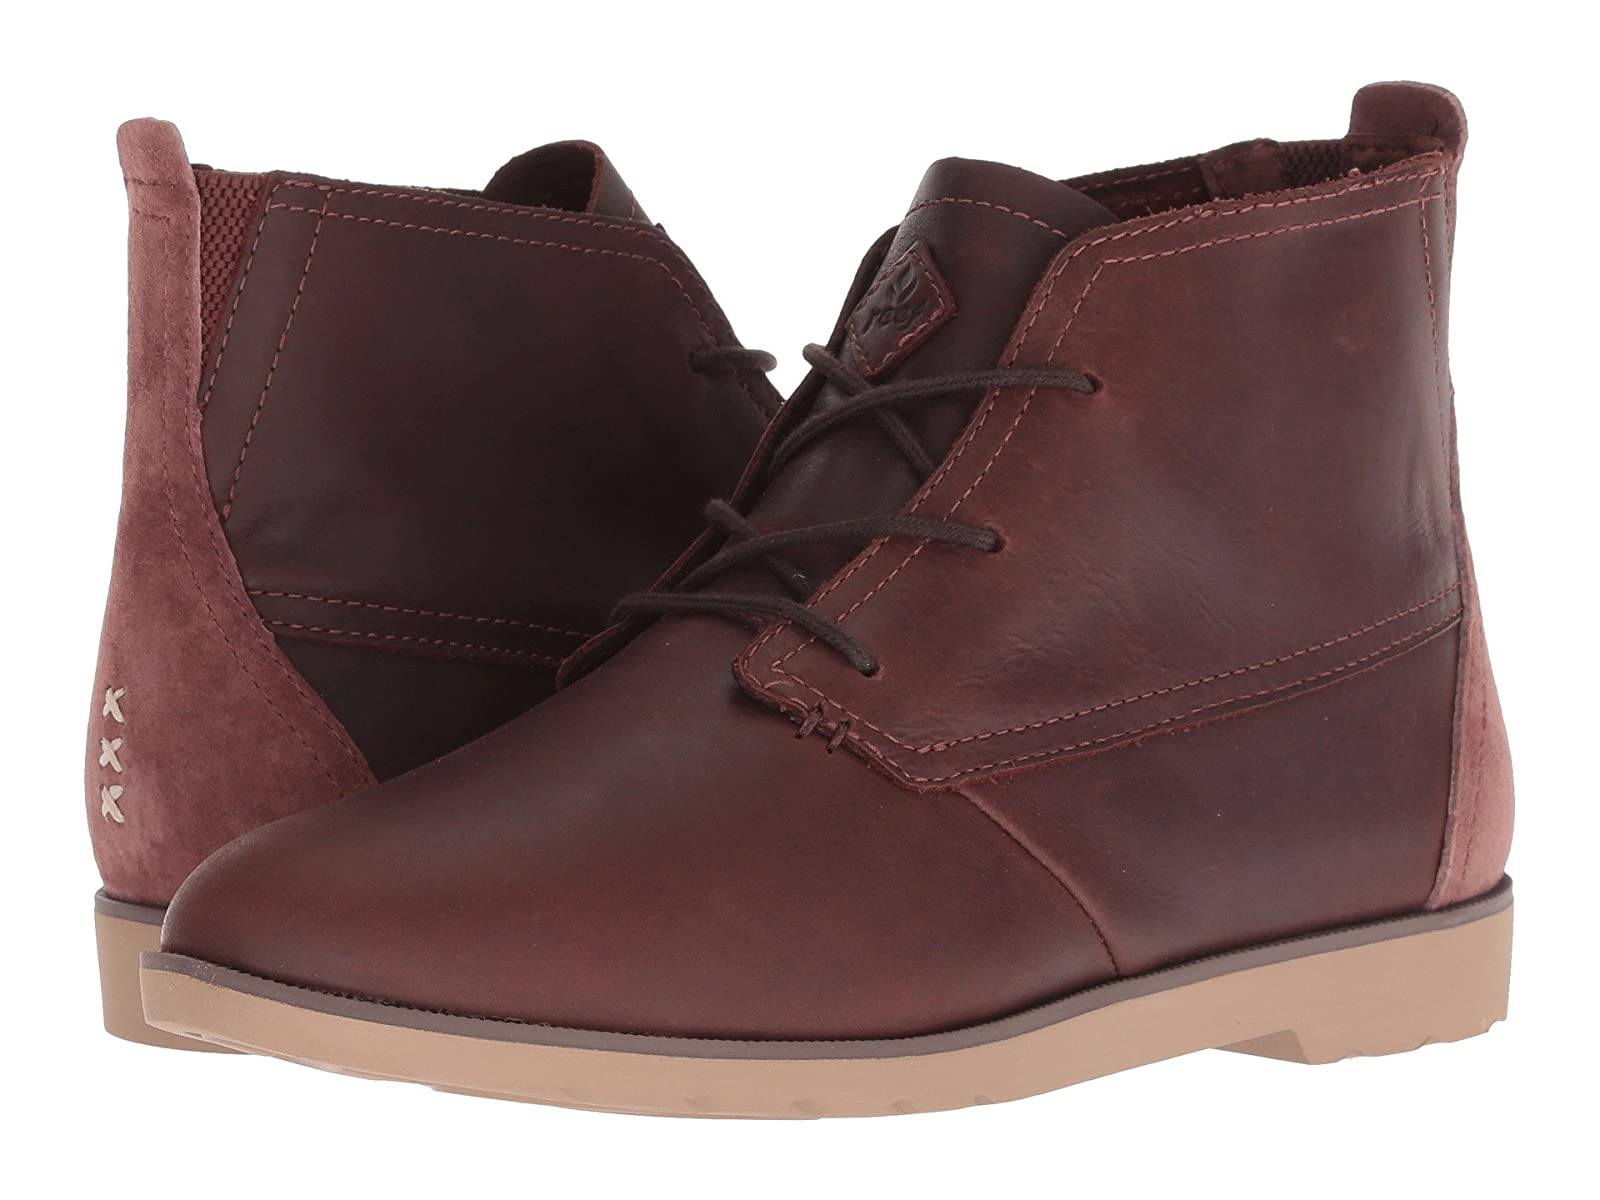 Reef Voyage DesertEconomical and quality shoes